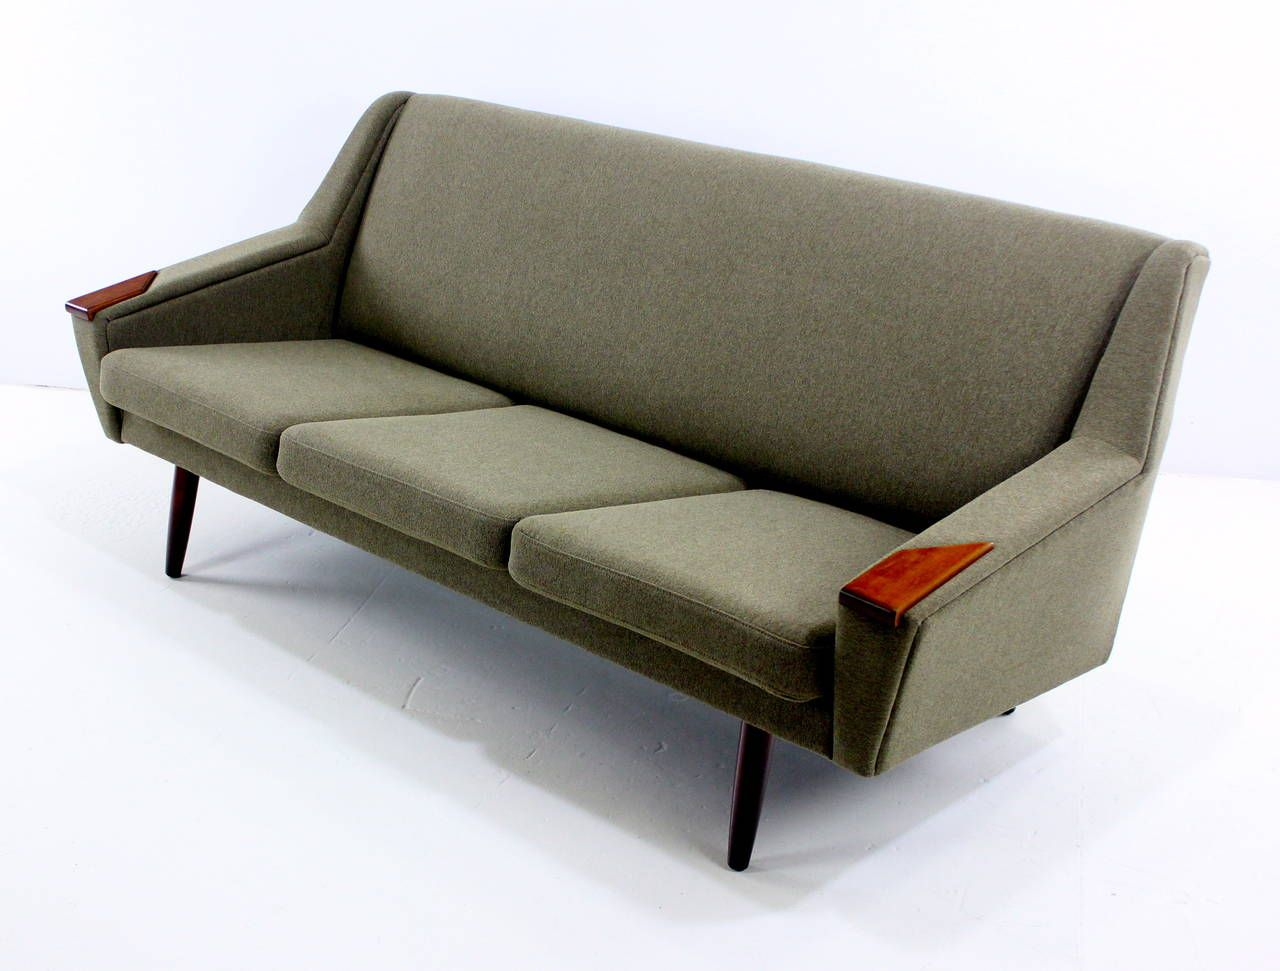 Classic Danish Modern Sofa With Teak Arm Accents From A Unique